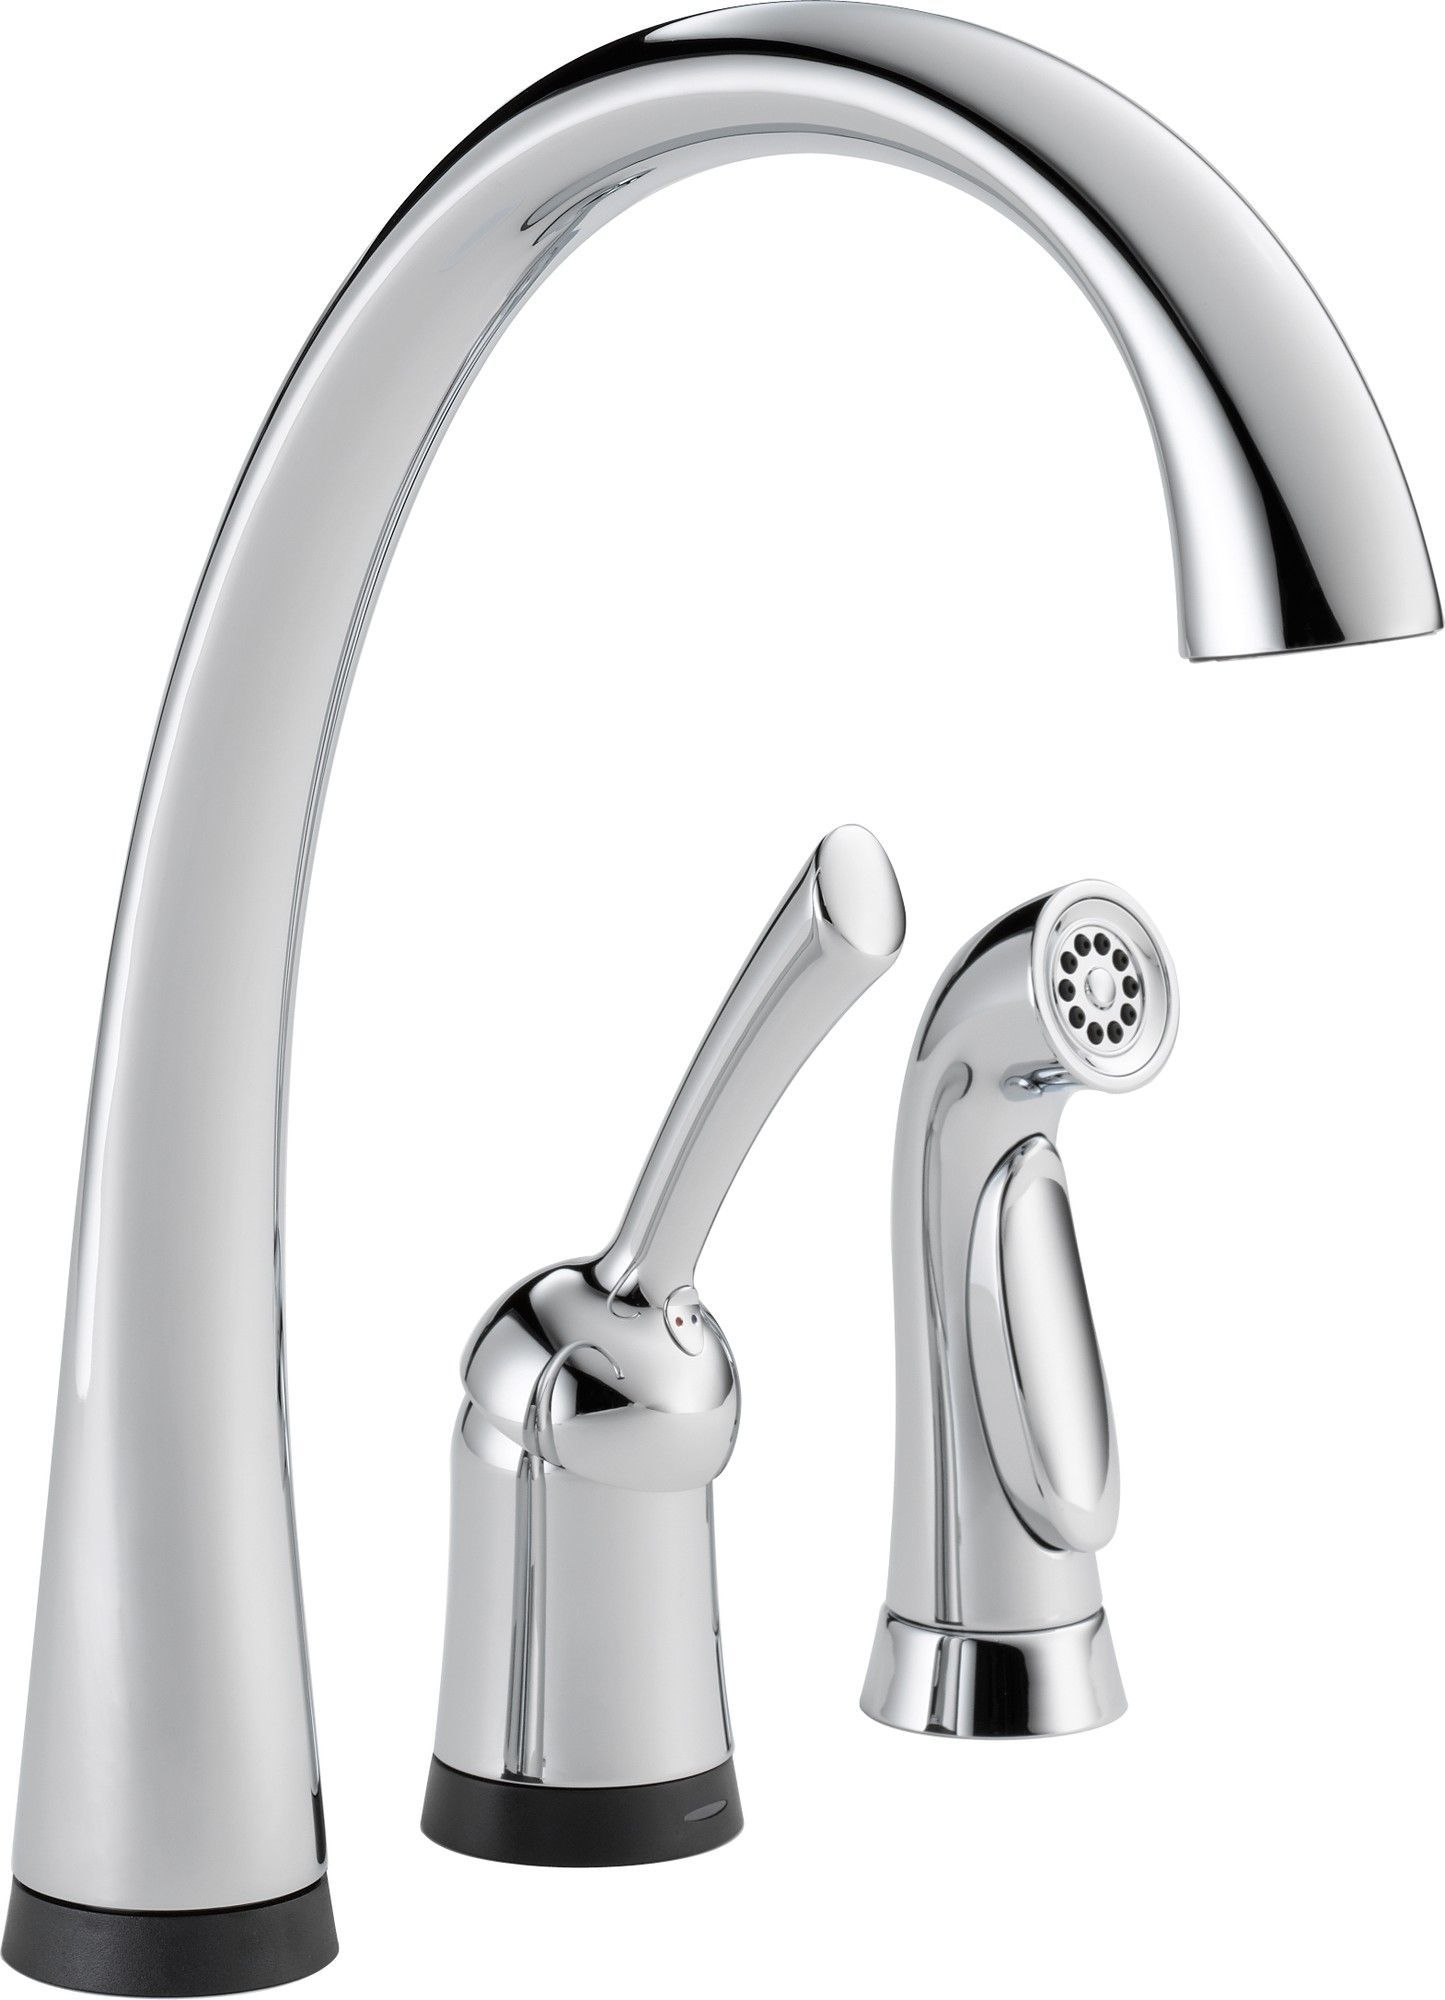 Pilar Single Handle Deck Mounted Kitchen Faucet with Spray